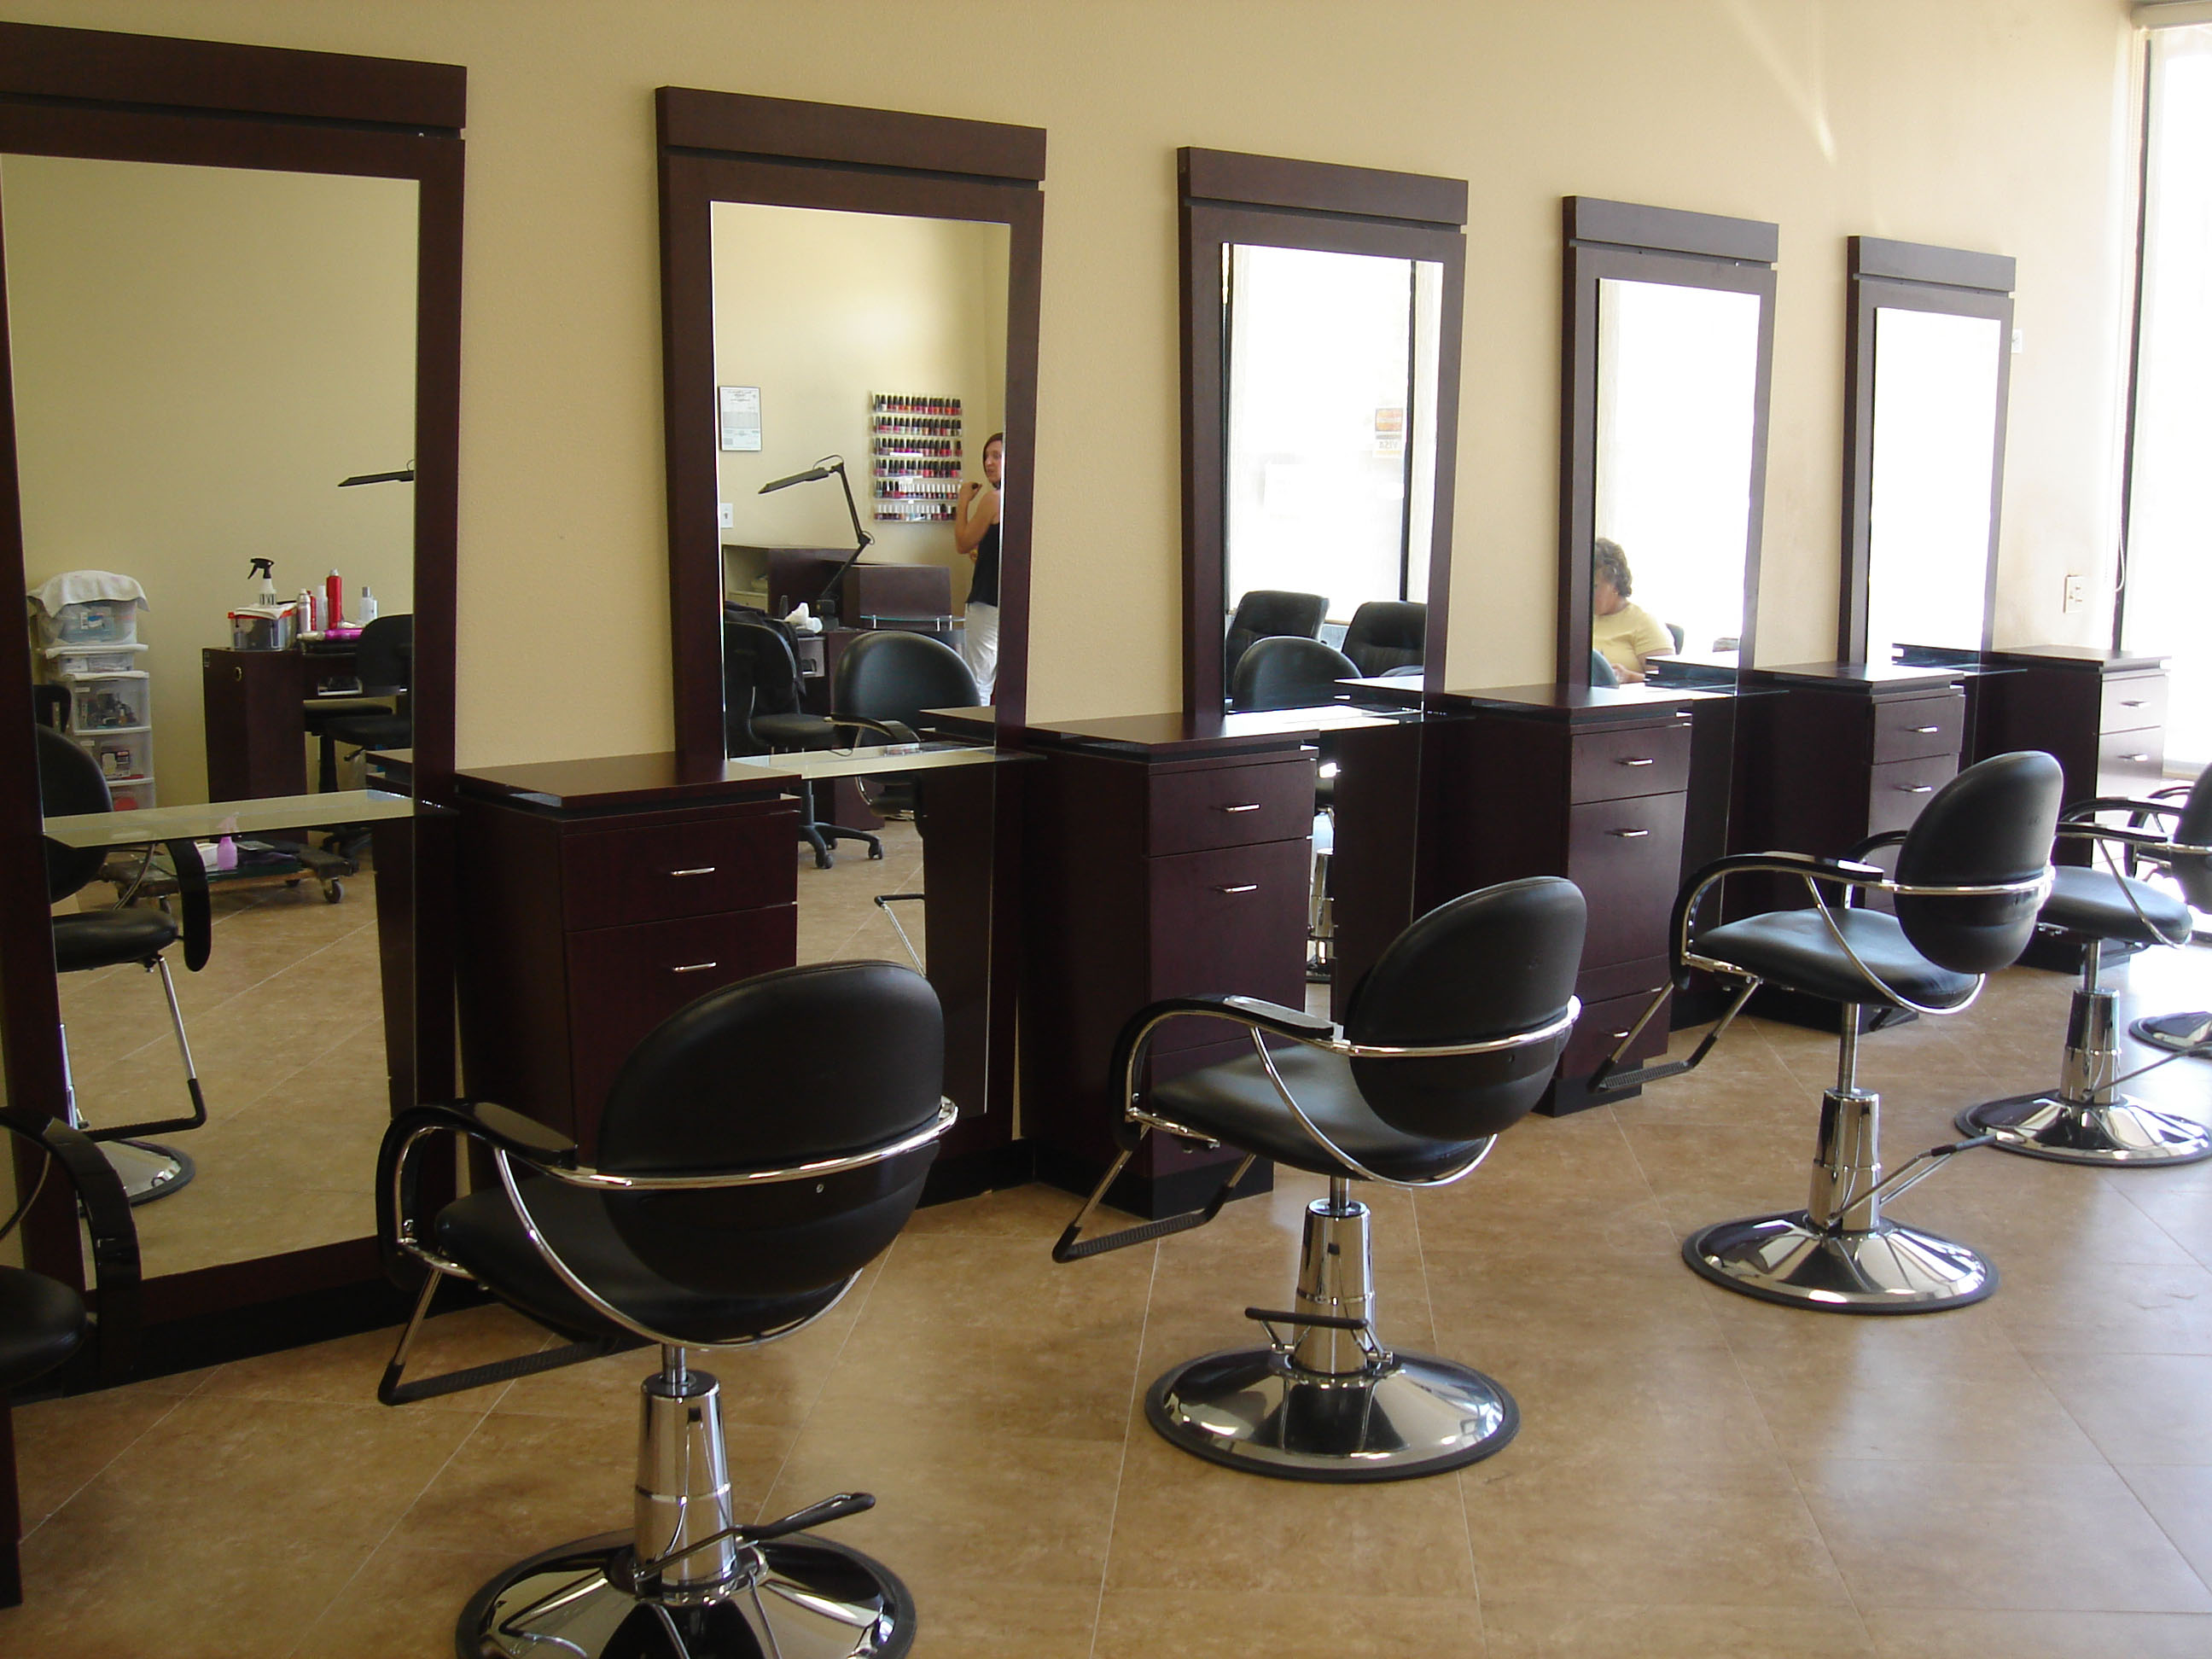 Groove your business with some exquisite salon furniture